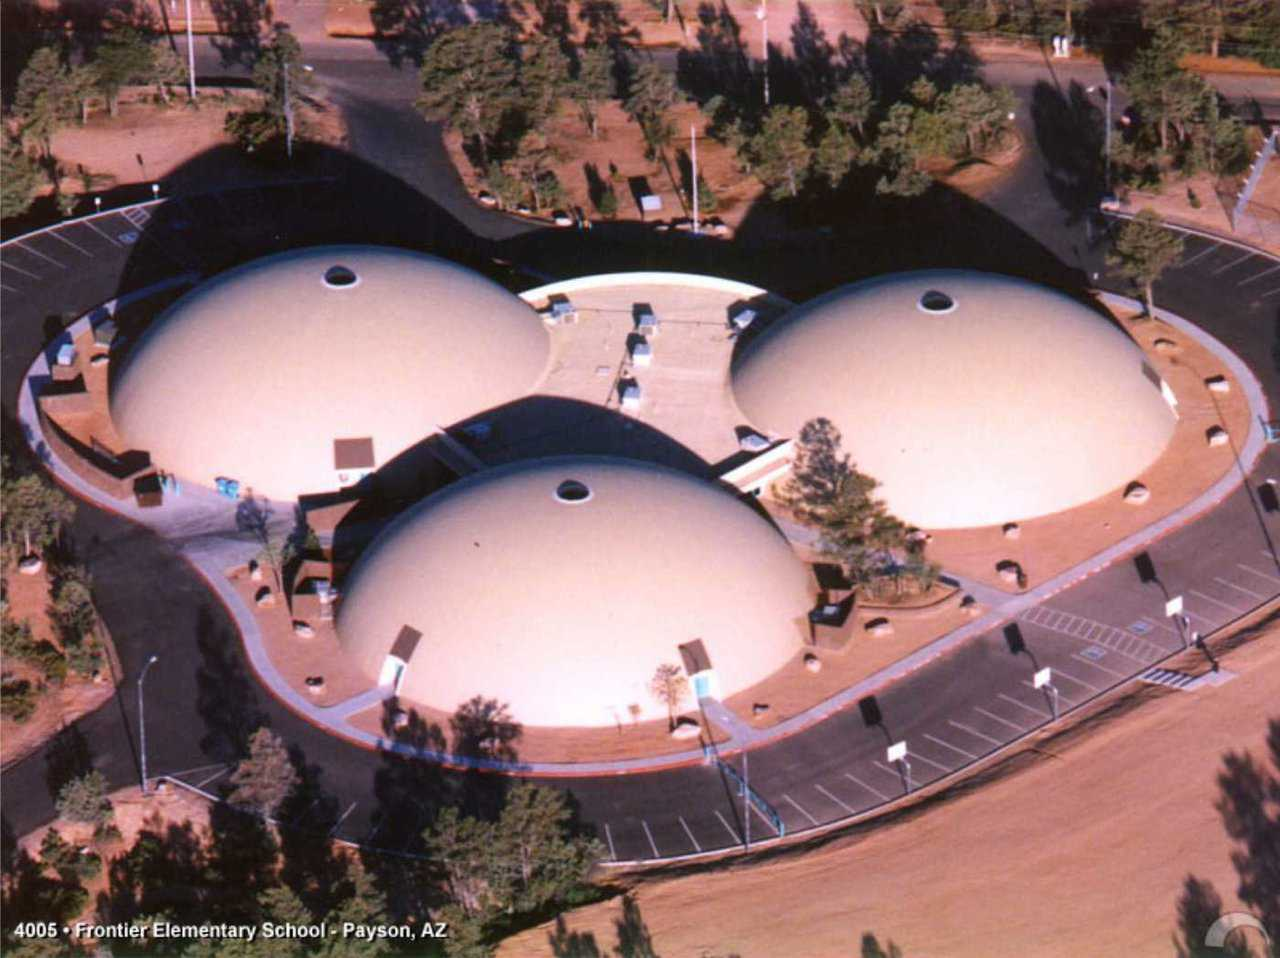 Three round structures — Visitors are surprised by the roominess and openness of the interior of these Monolithic Domes.